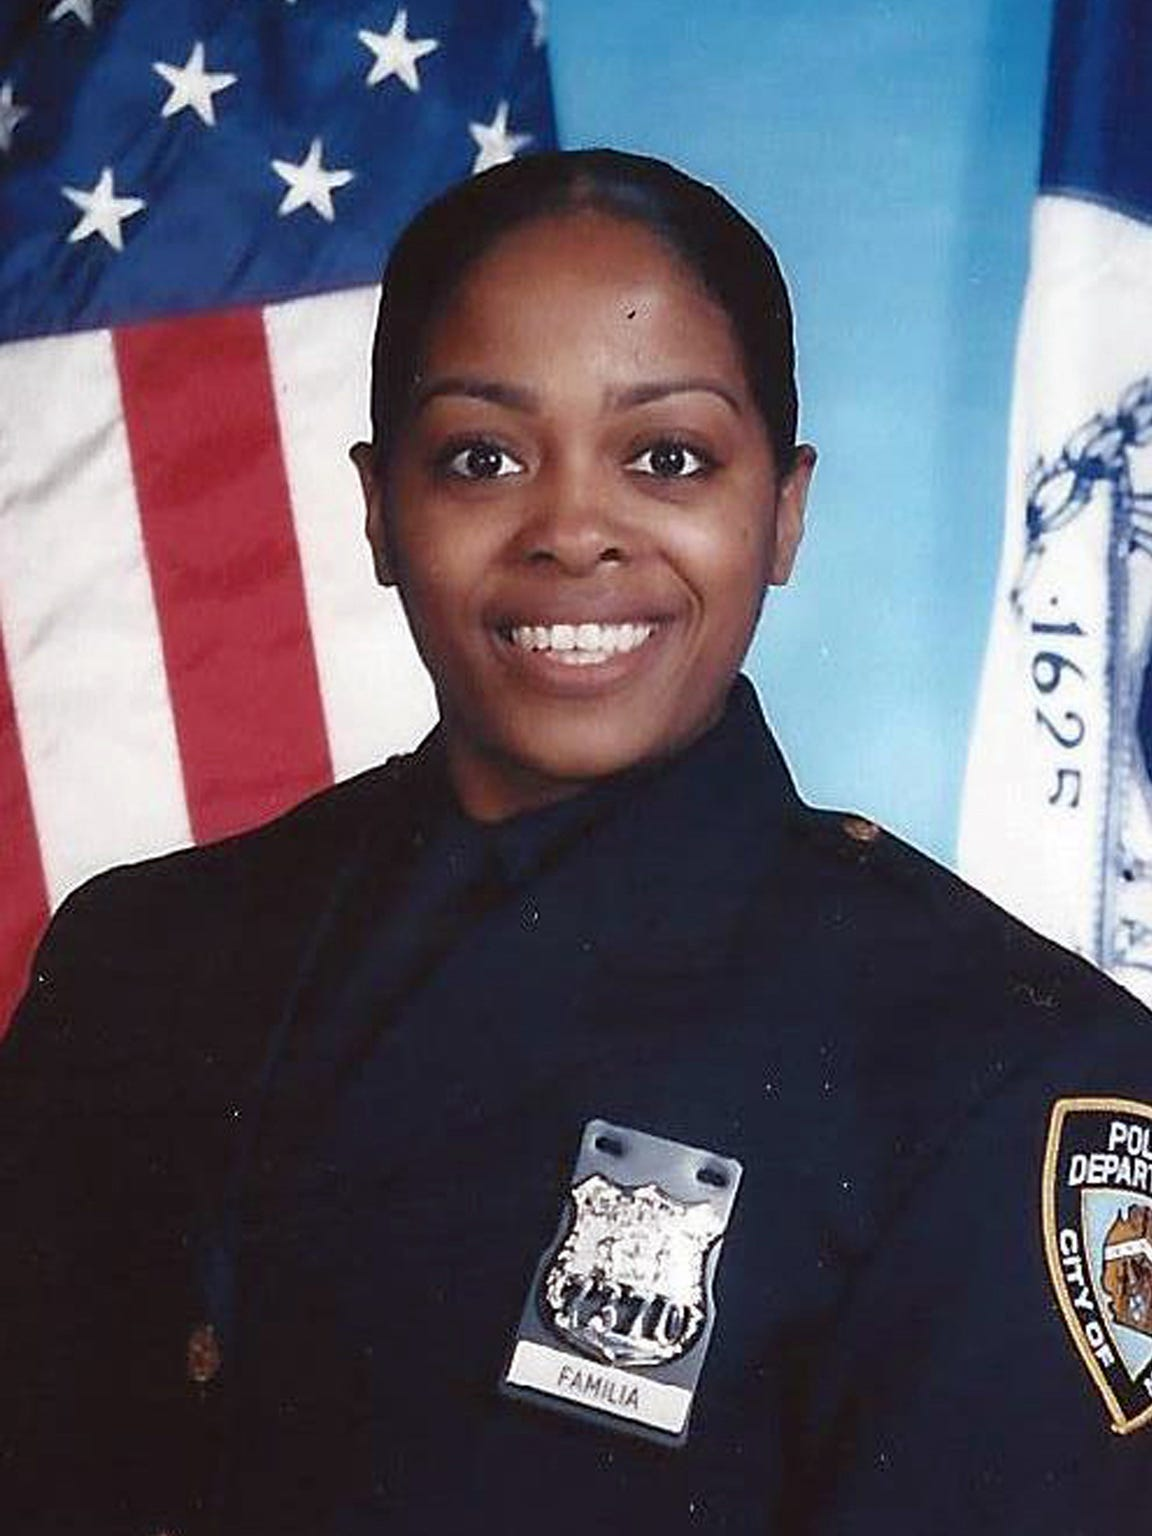 New York Police Department's Miosotis Familia, was